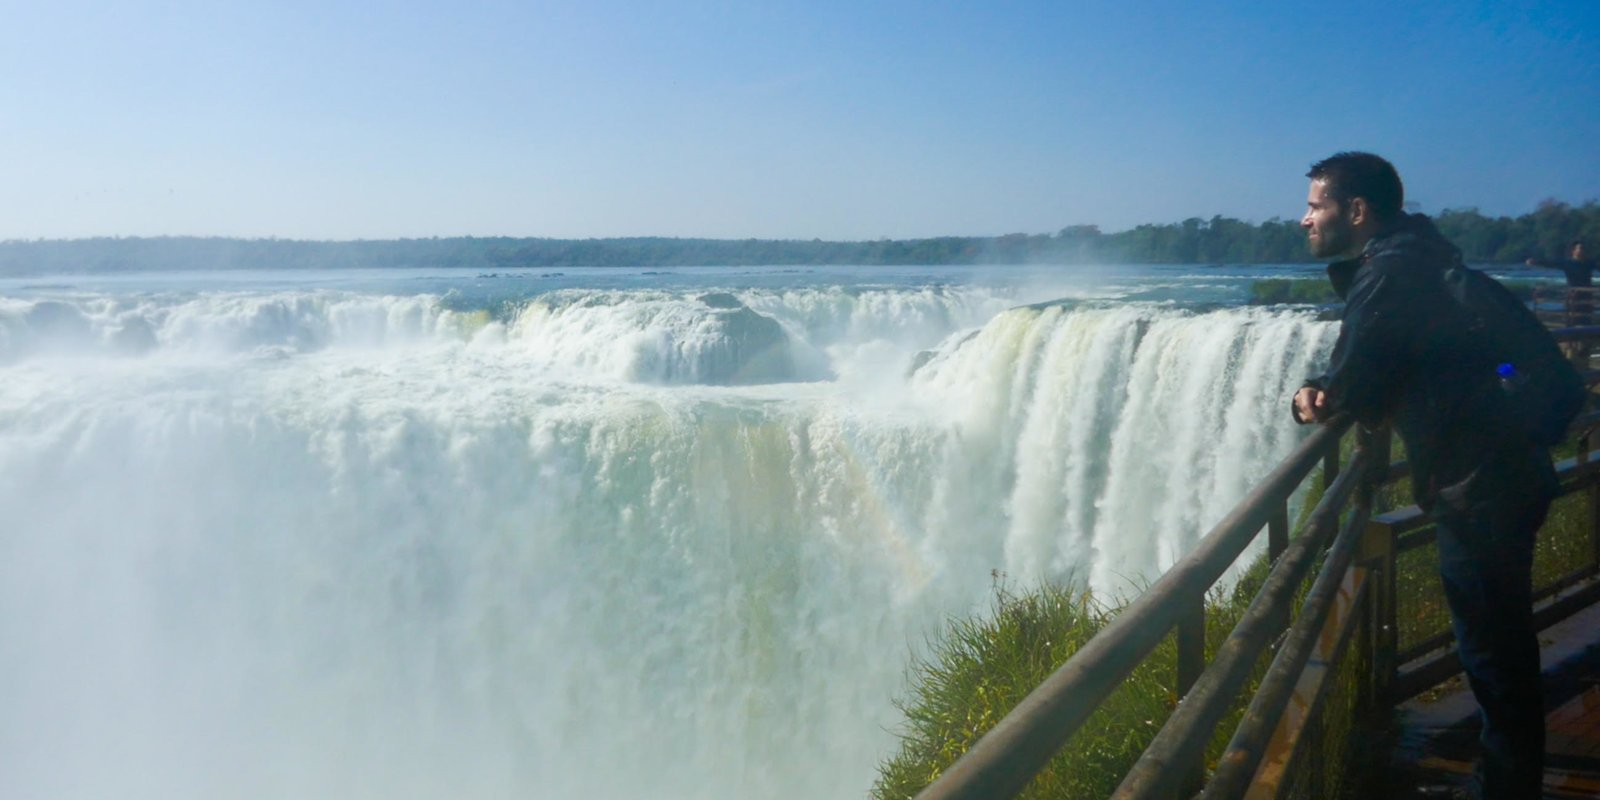 Gay Travel to Iguazu Falls - you can view the famous falls from the Brazilian or Argentinian side.